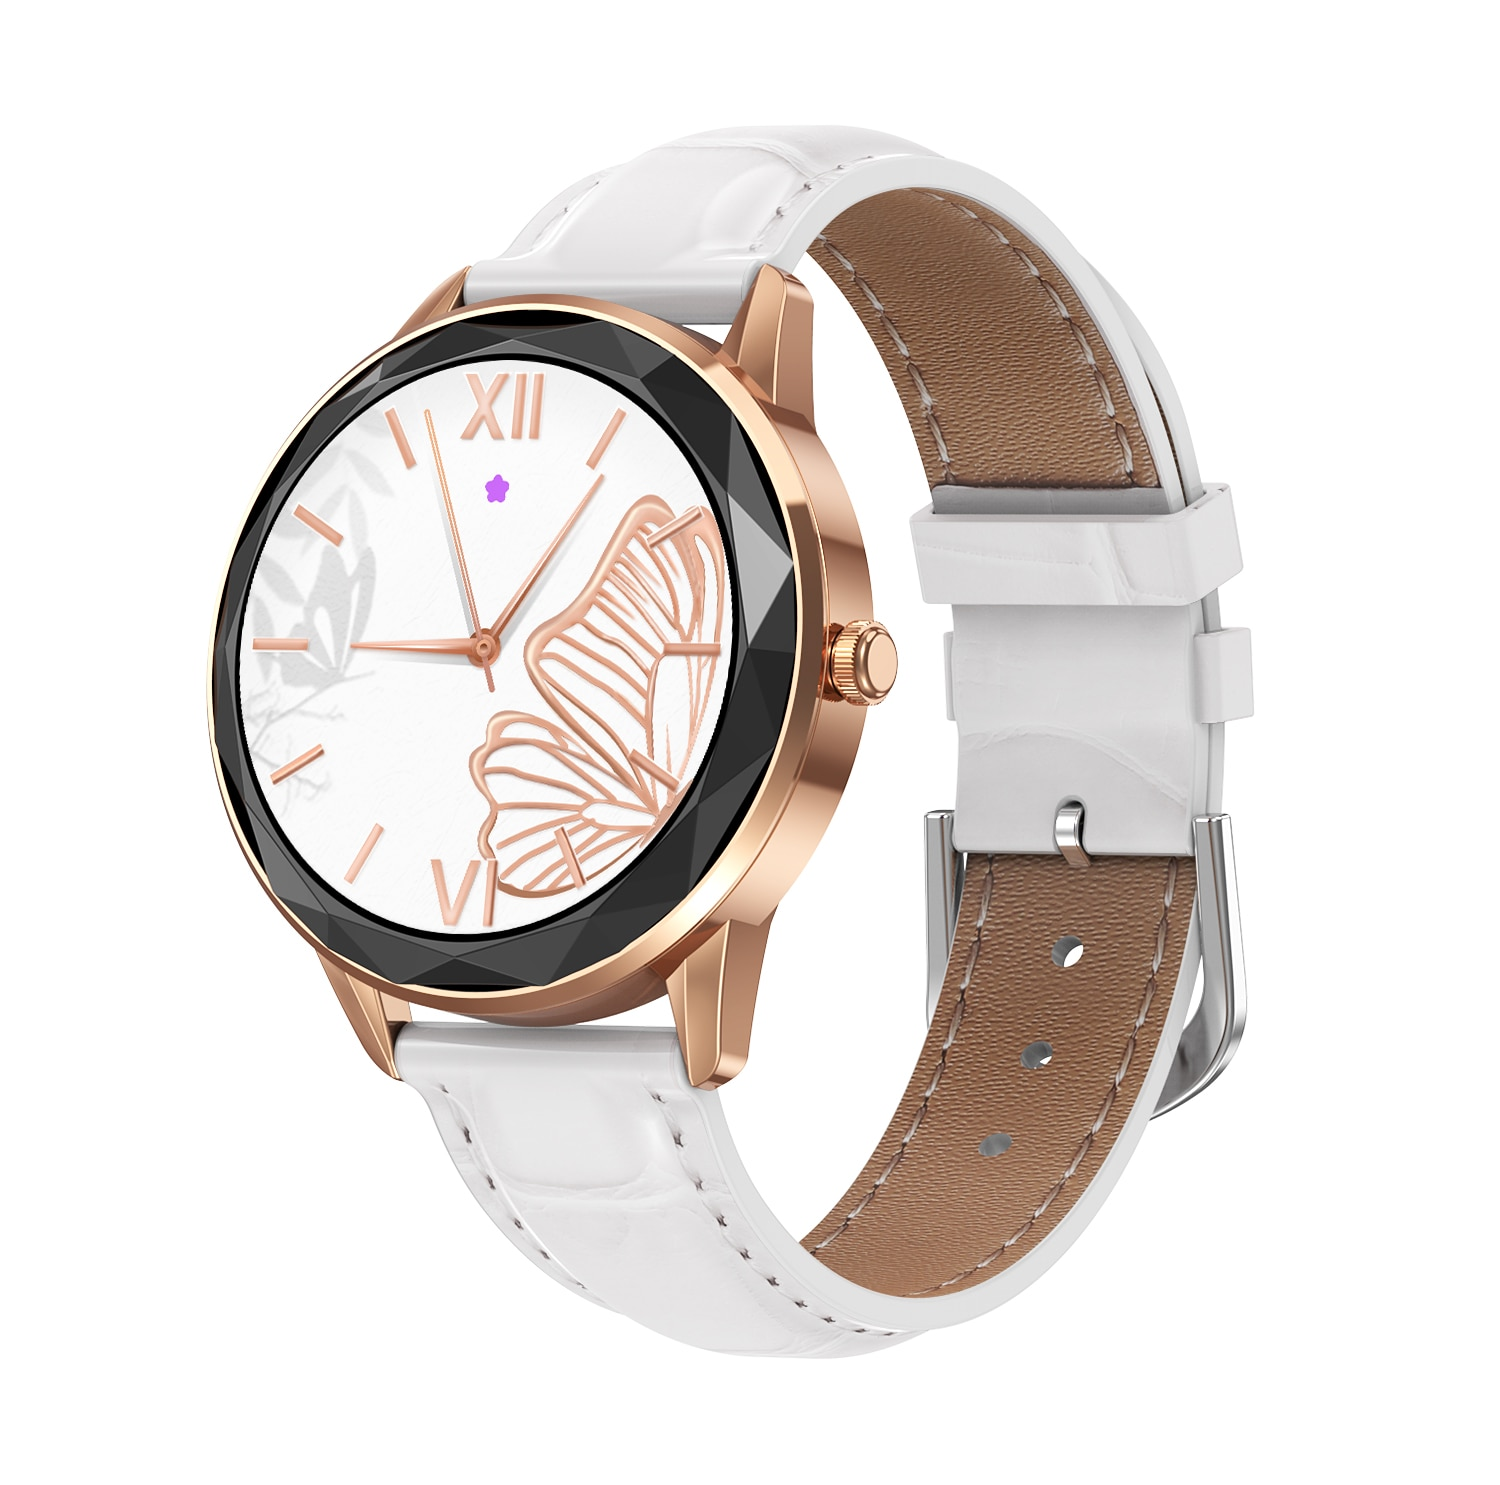 New HDT7 Women's Smart Watch Bracelet 1.09 Full Circle Full Touch Custom Dial Pedometer Heart Rate B